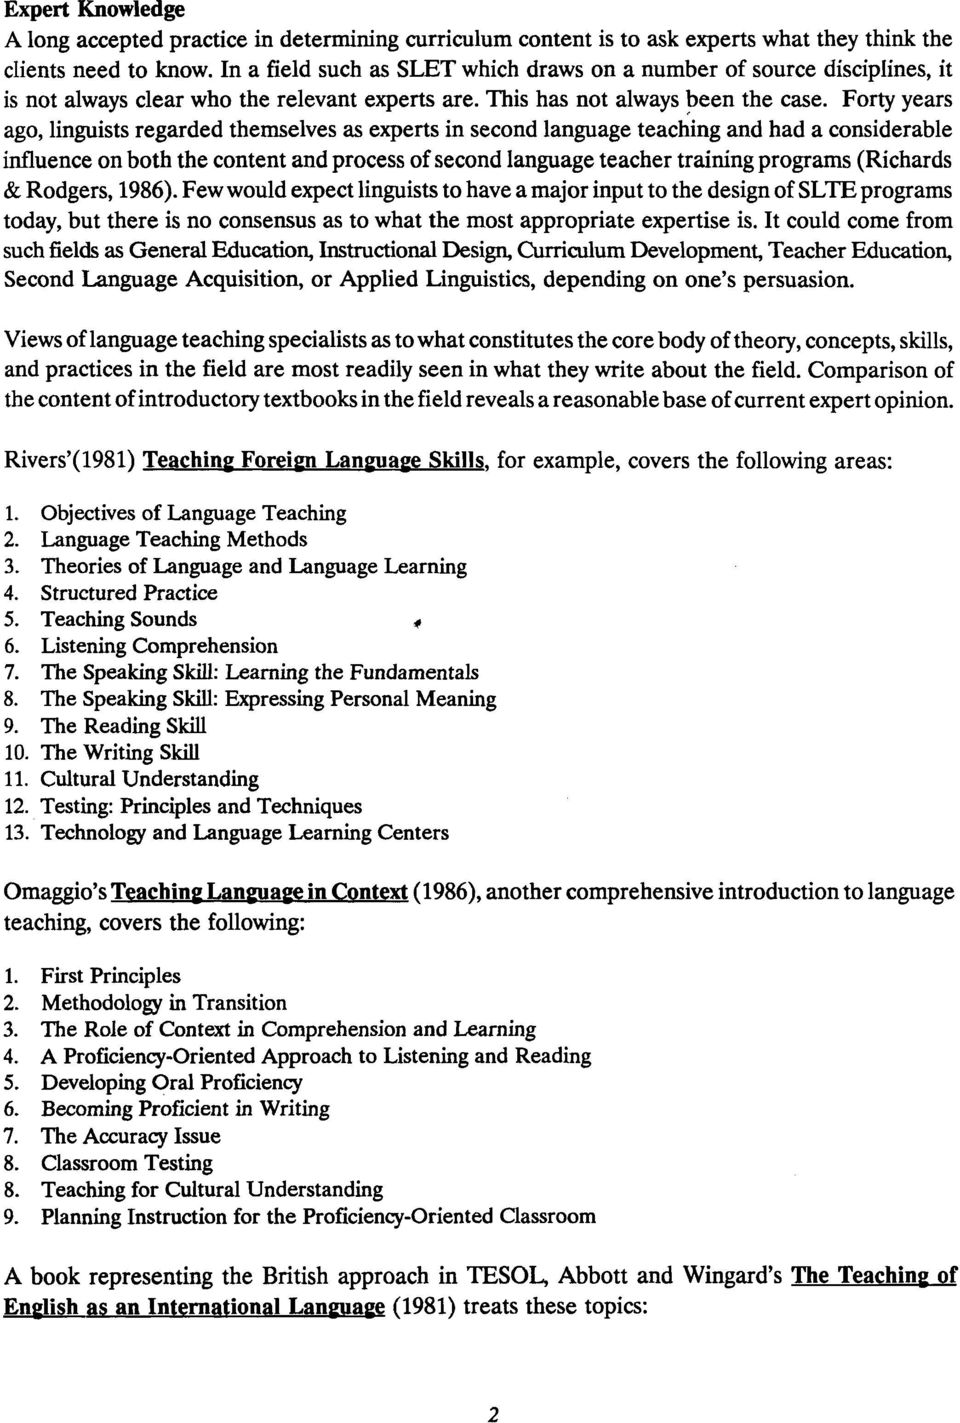 Forty years ago, linguists regarded themselves as experts in second language teaching and had a considerable influence on both the content and process ofsecond language teacher training programs